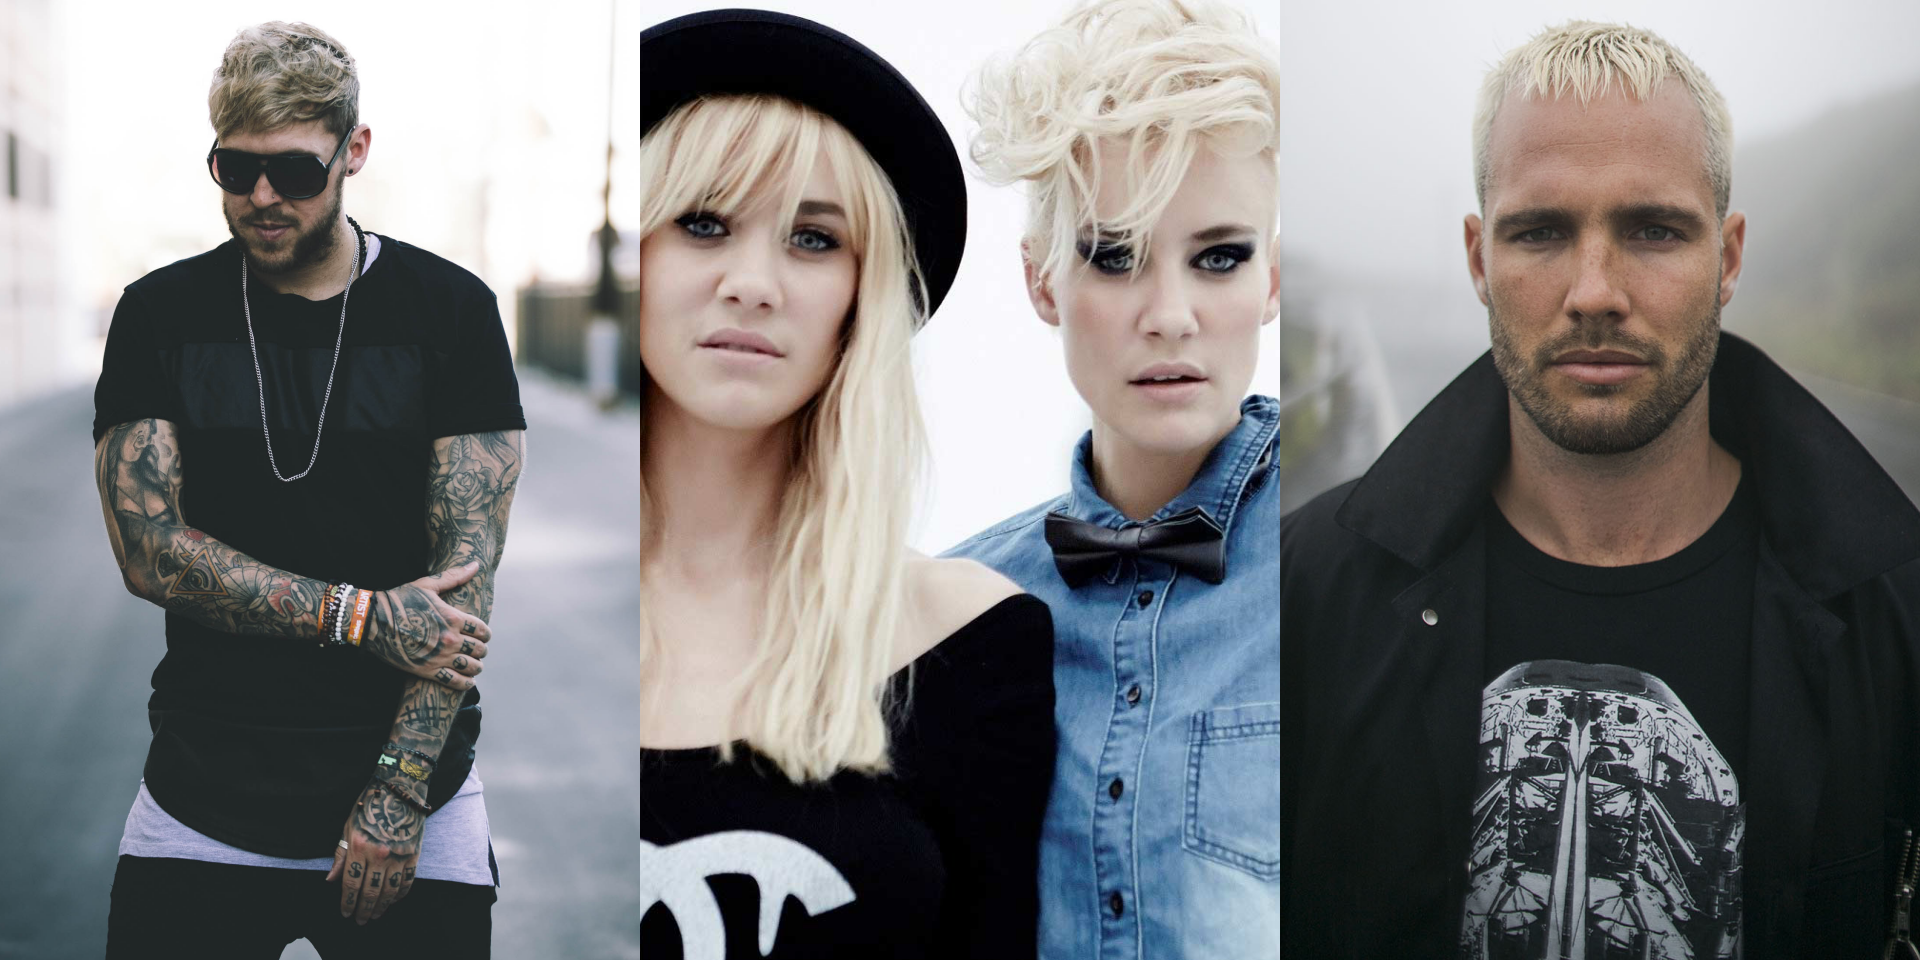 It's The Ship 2019 announces full lineup – headliners include Ben Nicky, Nervo, What So Not and more